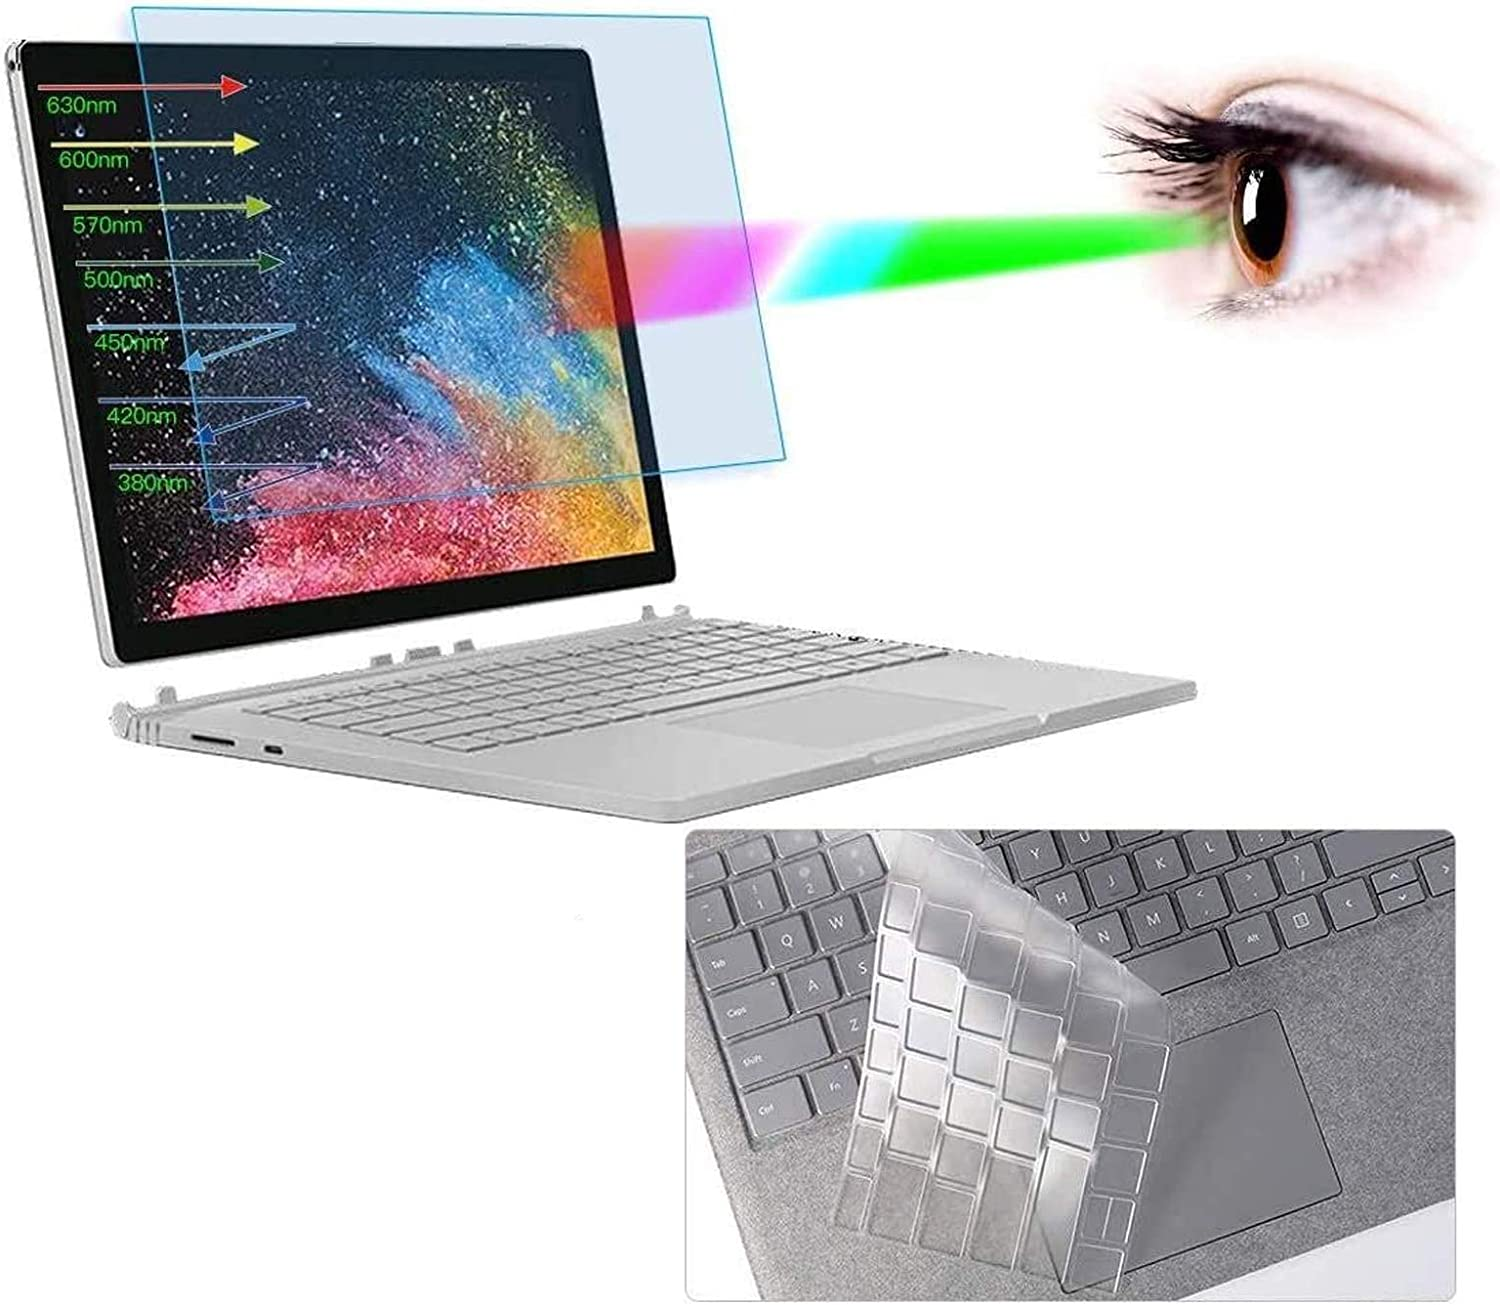 "Surface Book 2 15"" Screen Protector, Anti Blue Light Screen Protector with Keyboard Cover for Microsoft Surface Book 2 15"" Laptop Anti Blue Light Glare Screen Filter Eye Protection Screen Protector"